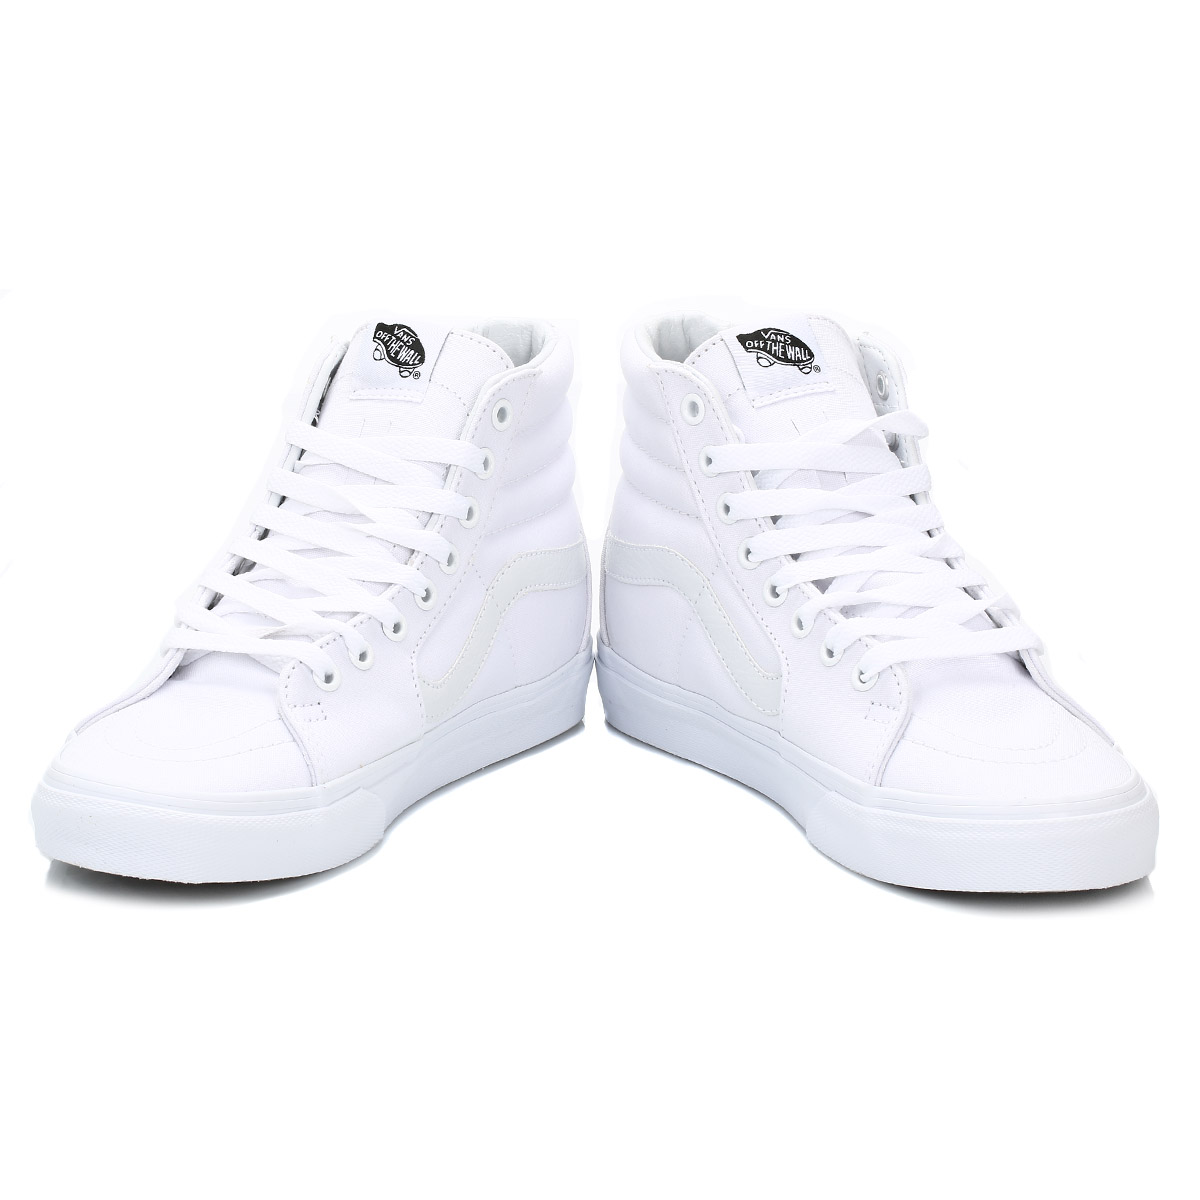 Vans Men High Tops White SK8 Hi Suede Trainers LaceUp ...